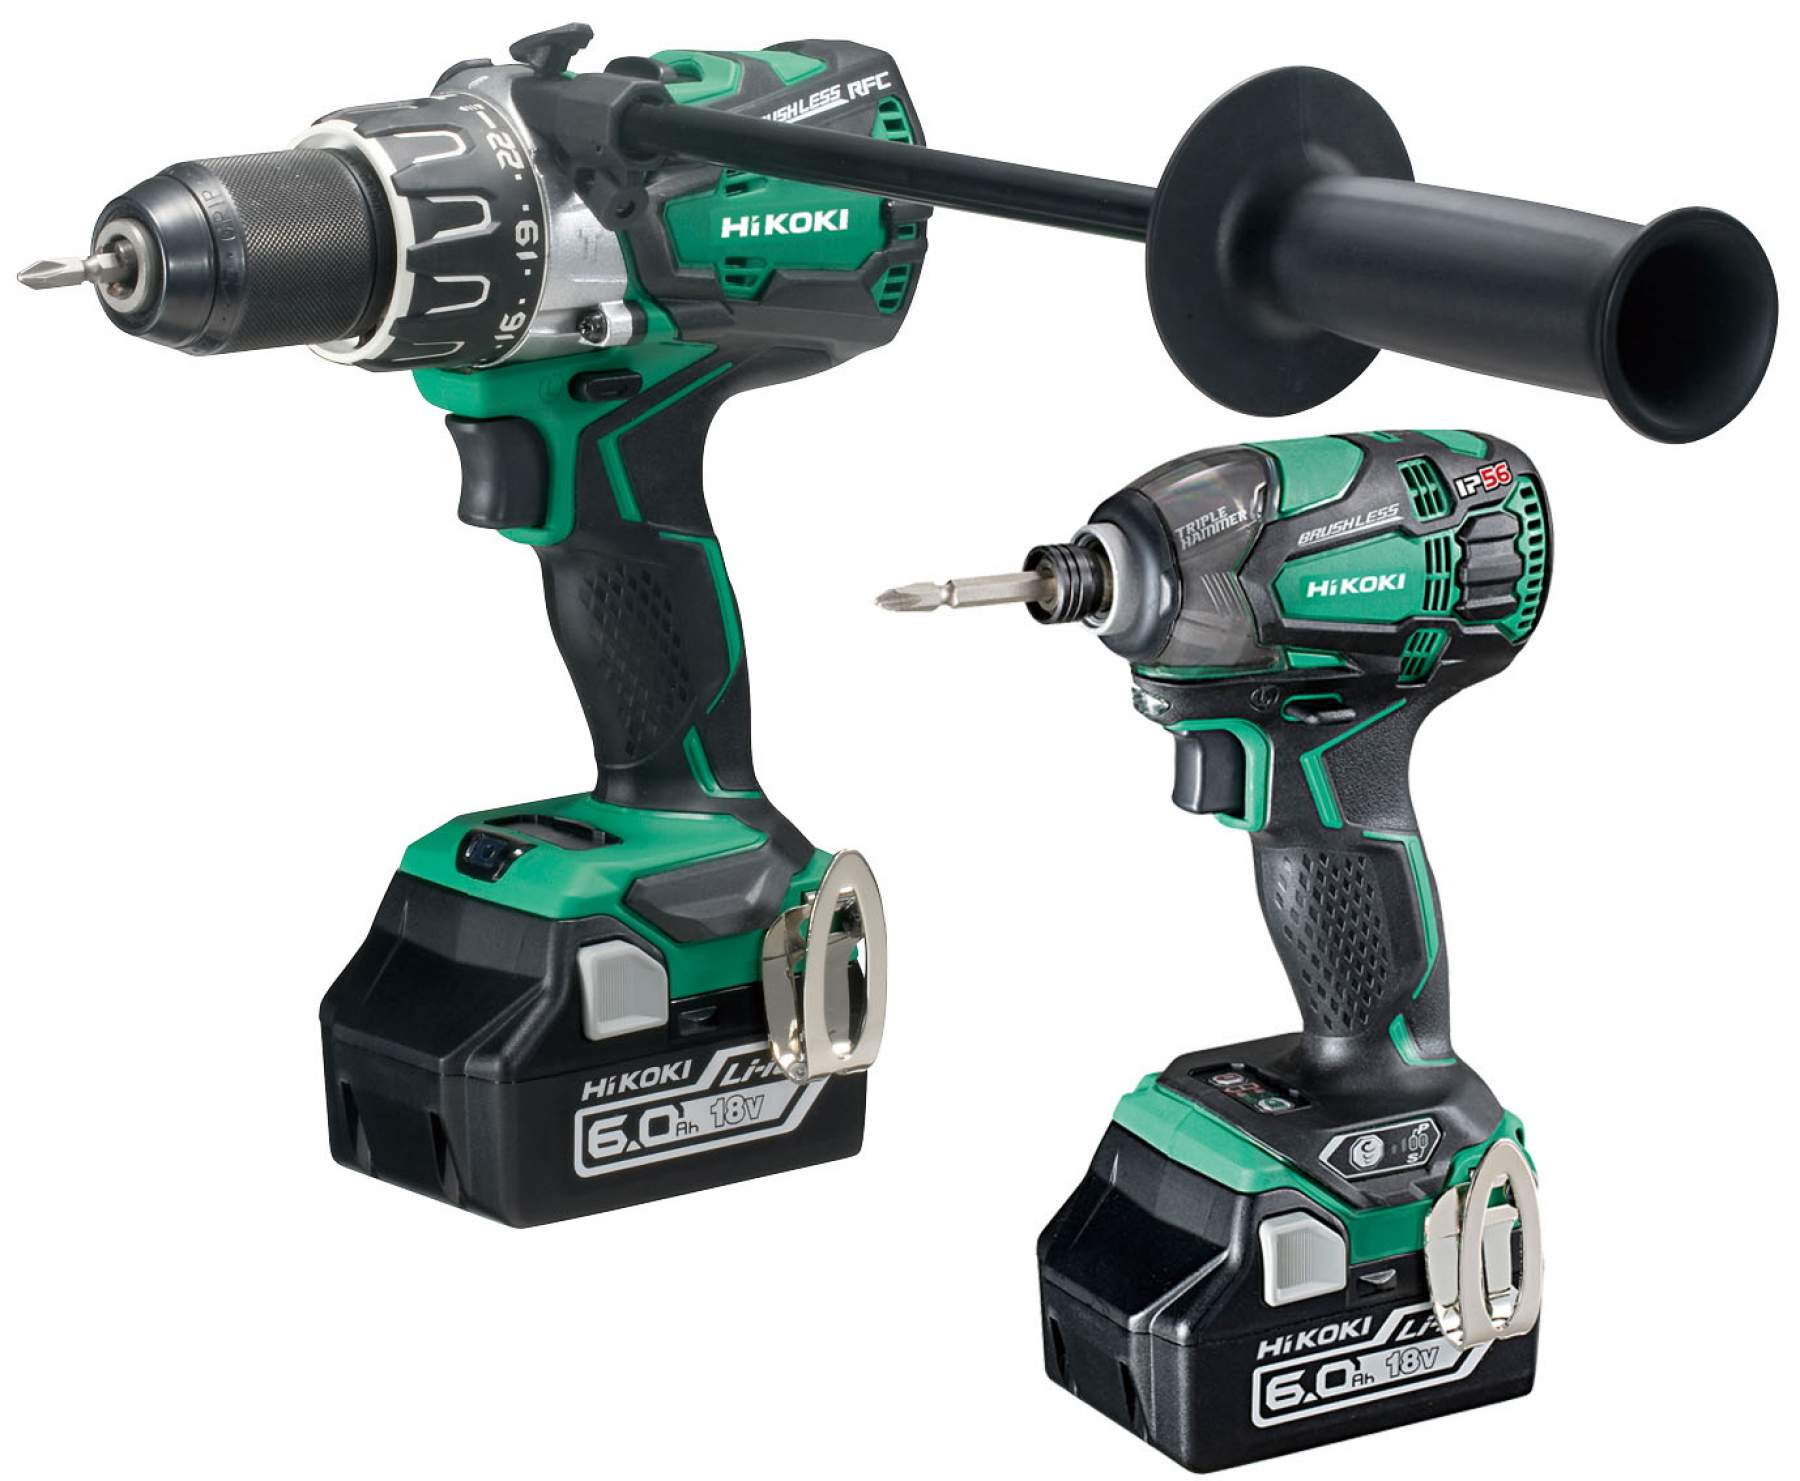 2 Pce 18V Cordless Kit with 6.0Ah Li-Ion Batteries